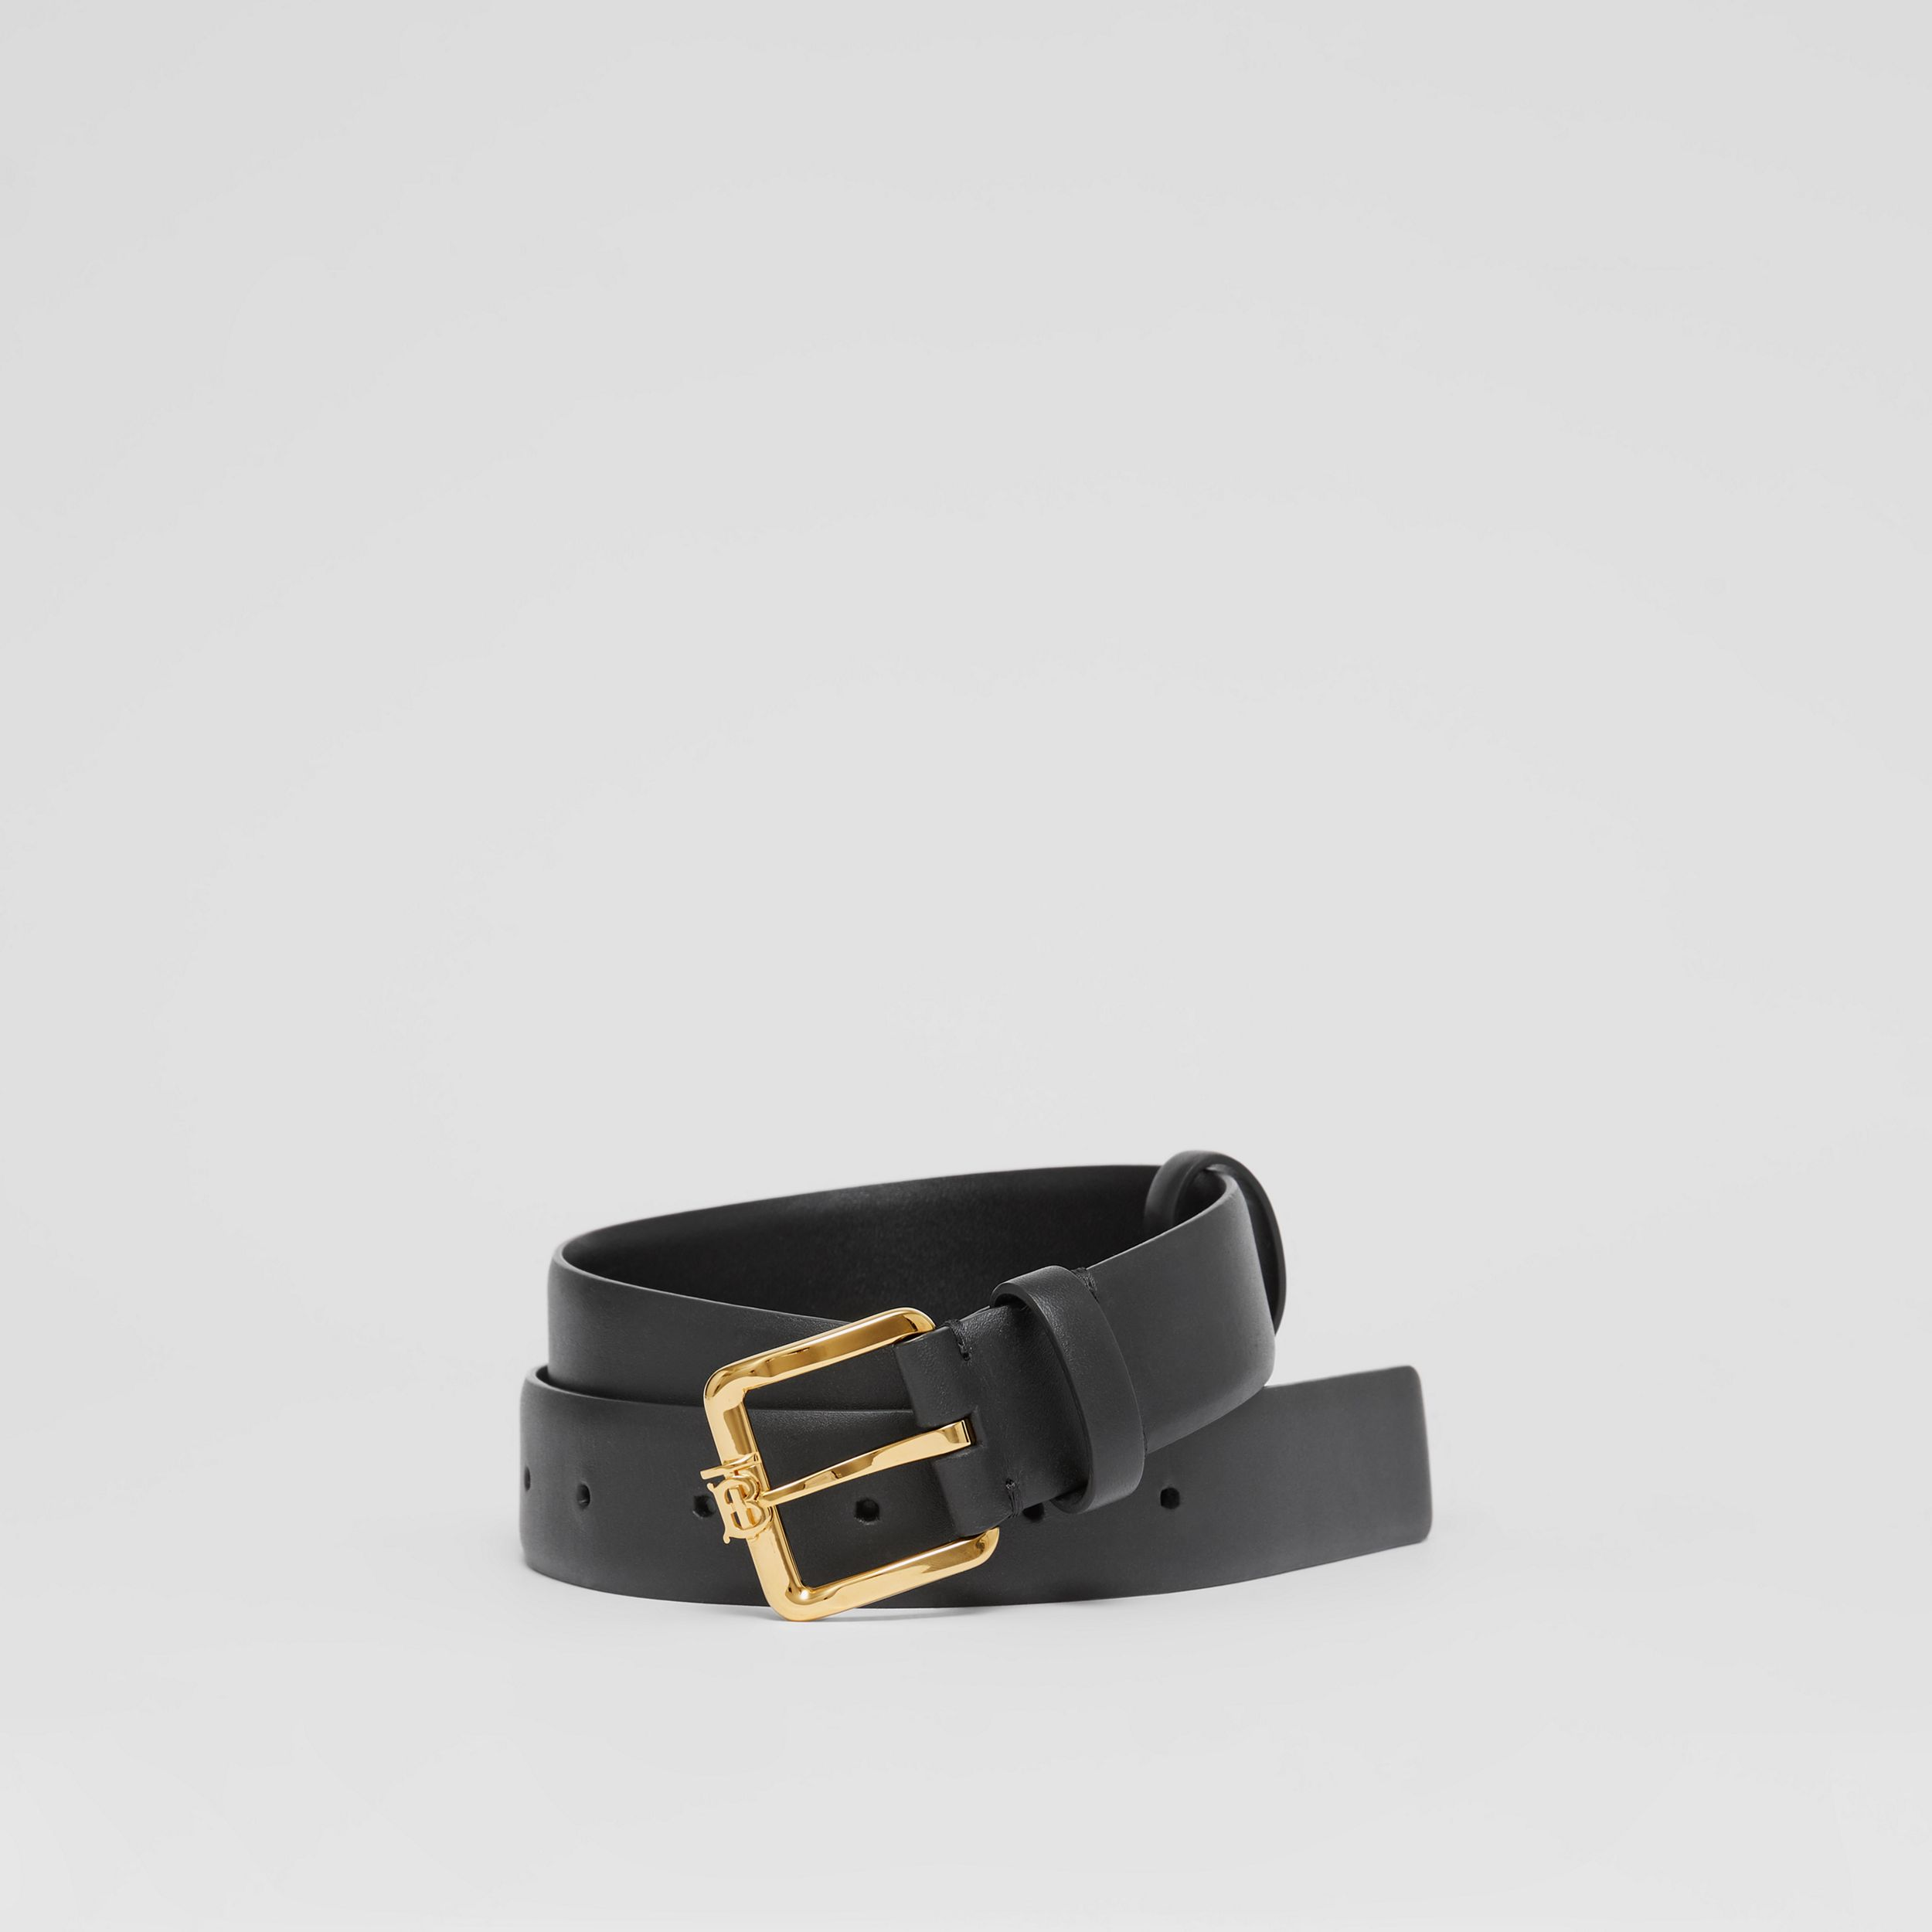 Monogram Motif Leather Belt in Black - Women | Burberry - 1